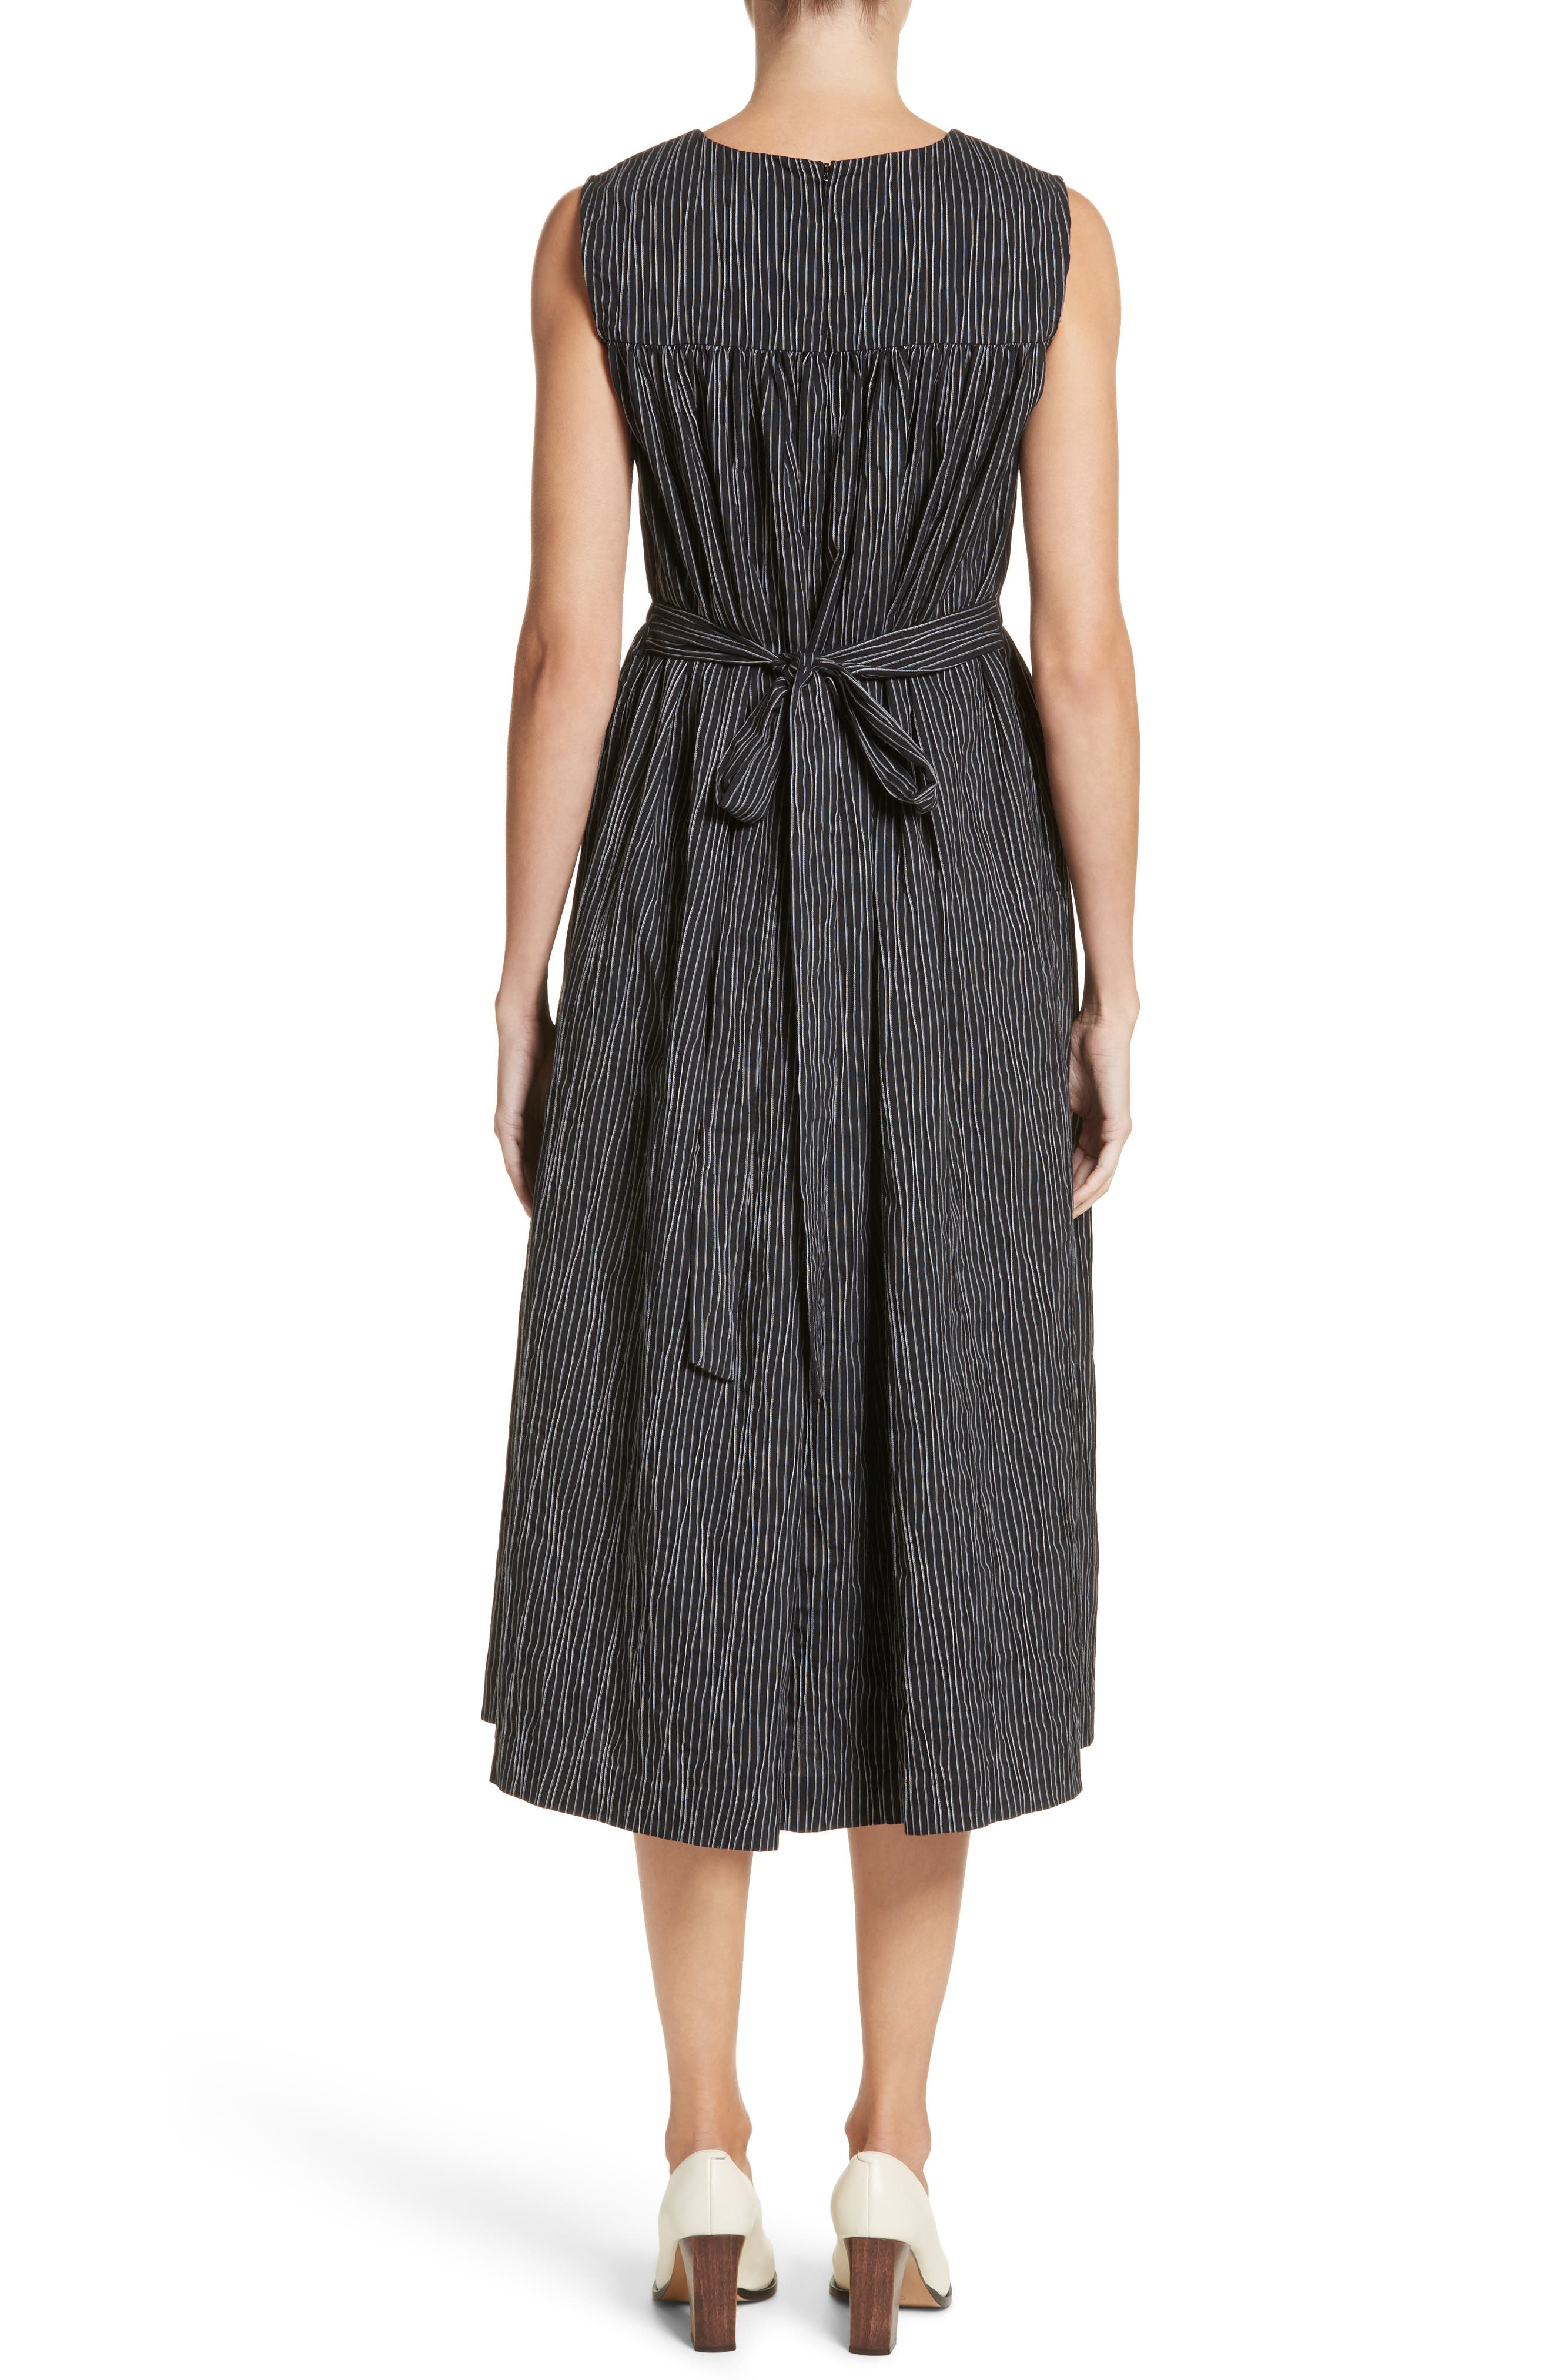 Stripe Crinkle Cotton Blend Midi Dress,                             Alternate thumbnail 2, color,                             Black/ White Stripe